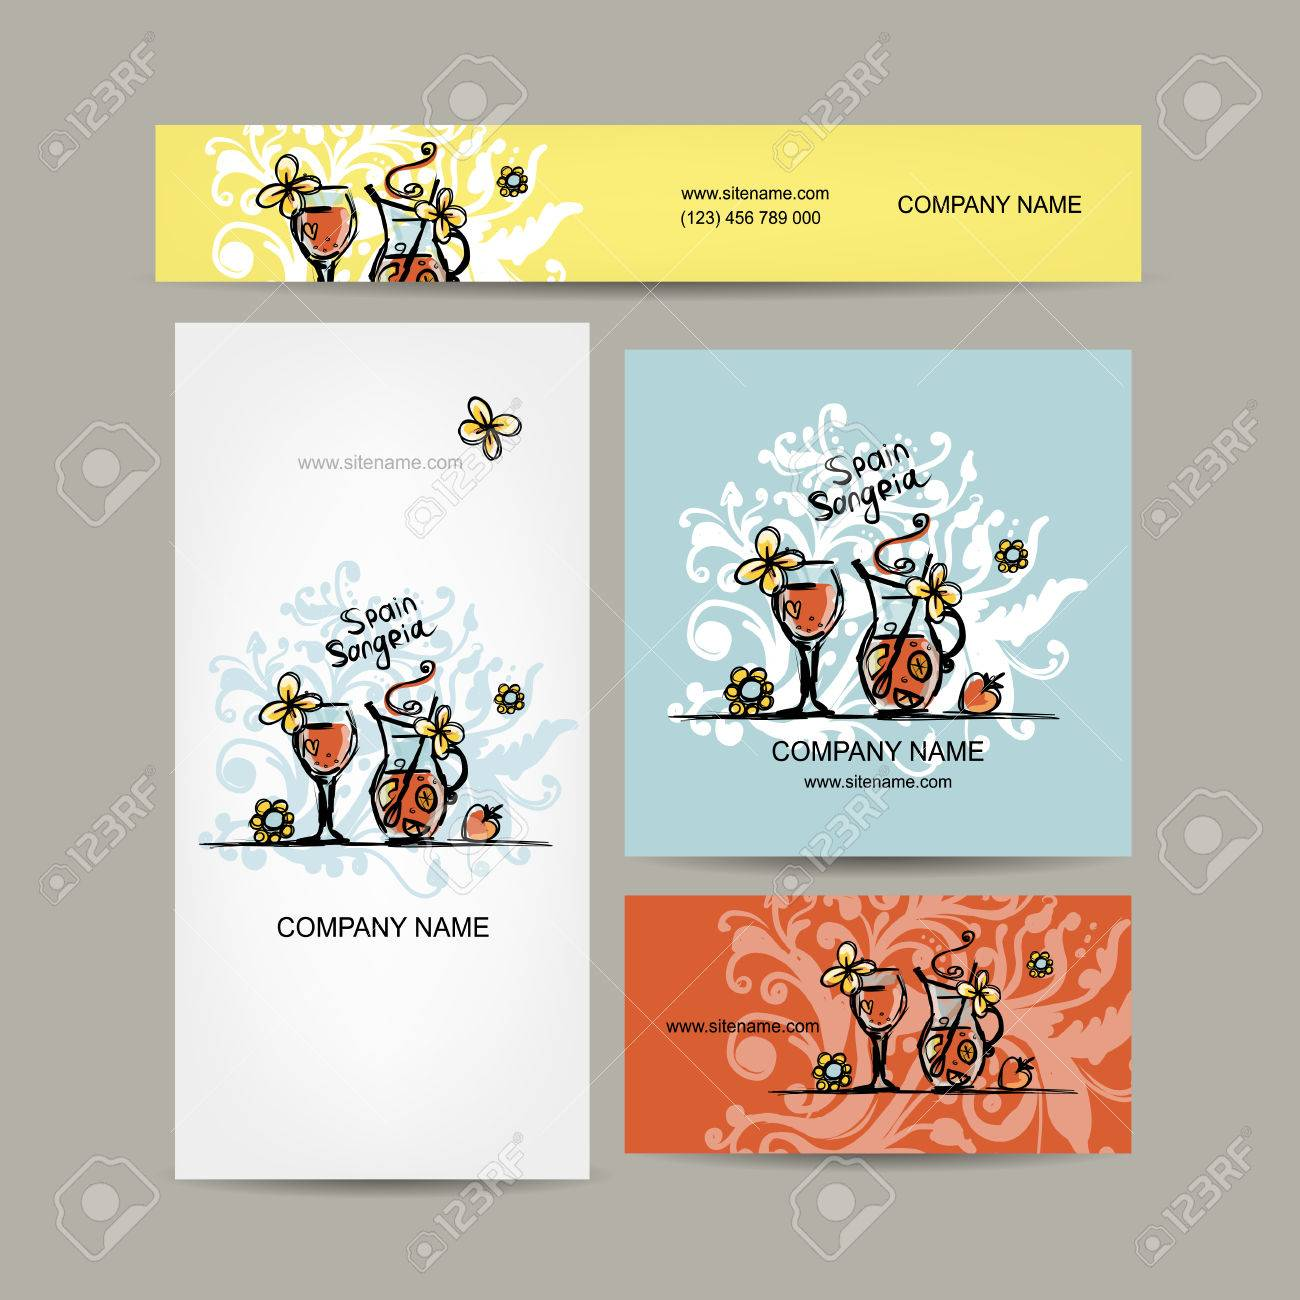 Sangria spanish drink business cards design vector illustration sangria spanish drink business cards design vector illustration stock vector 43266098 reheart Image collections